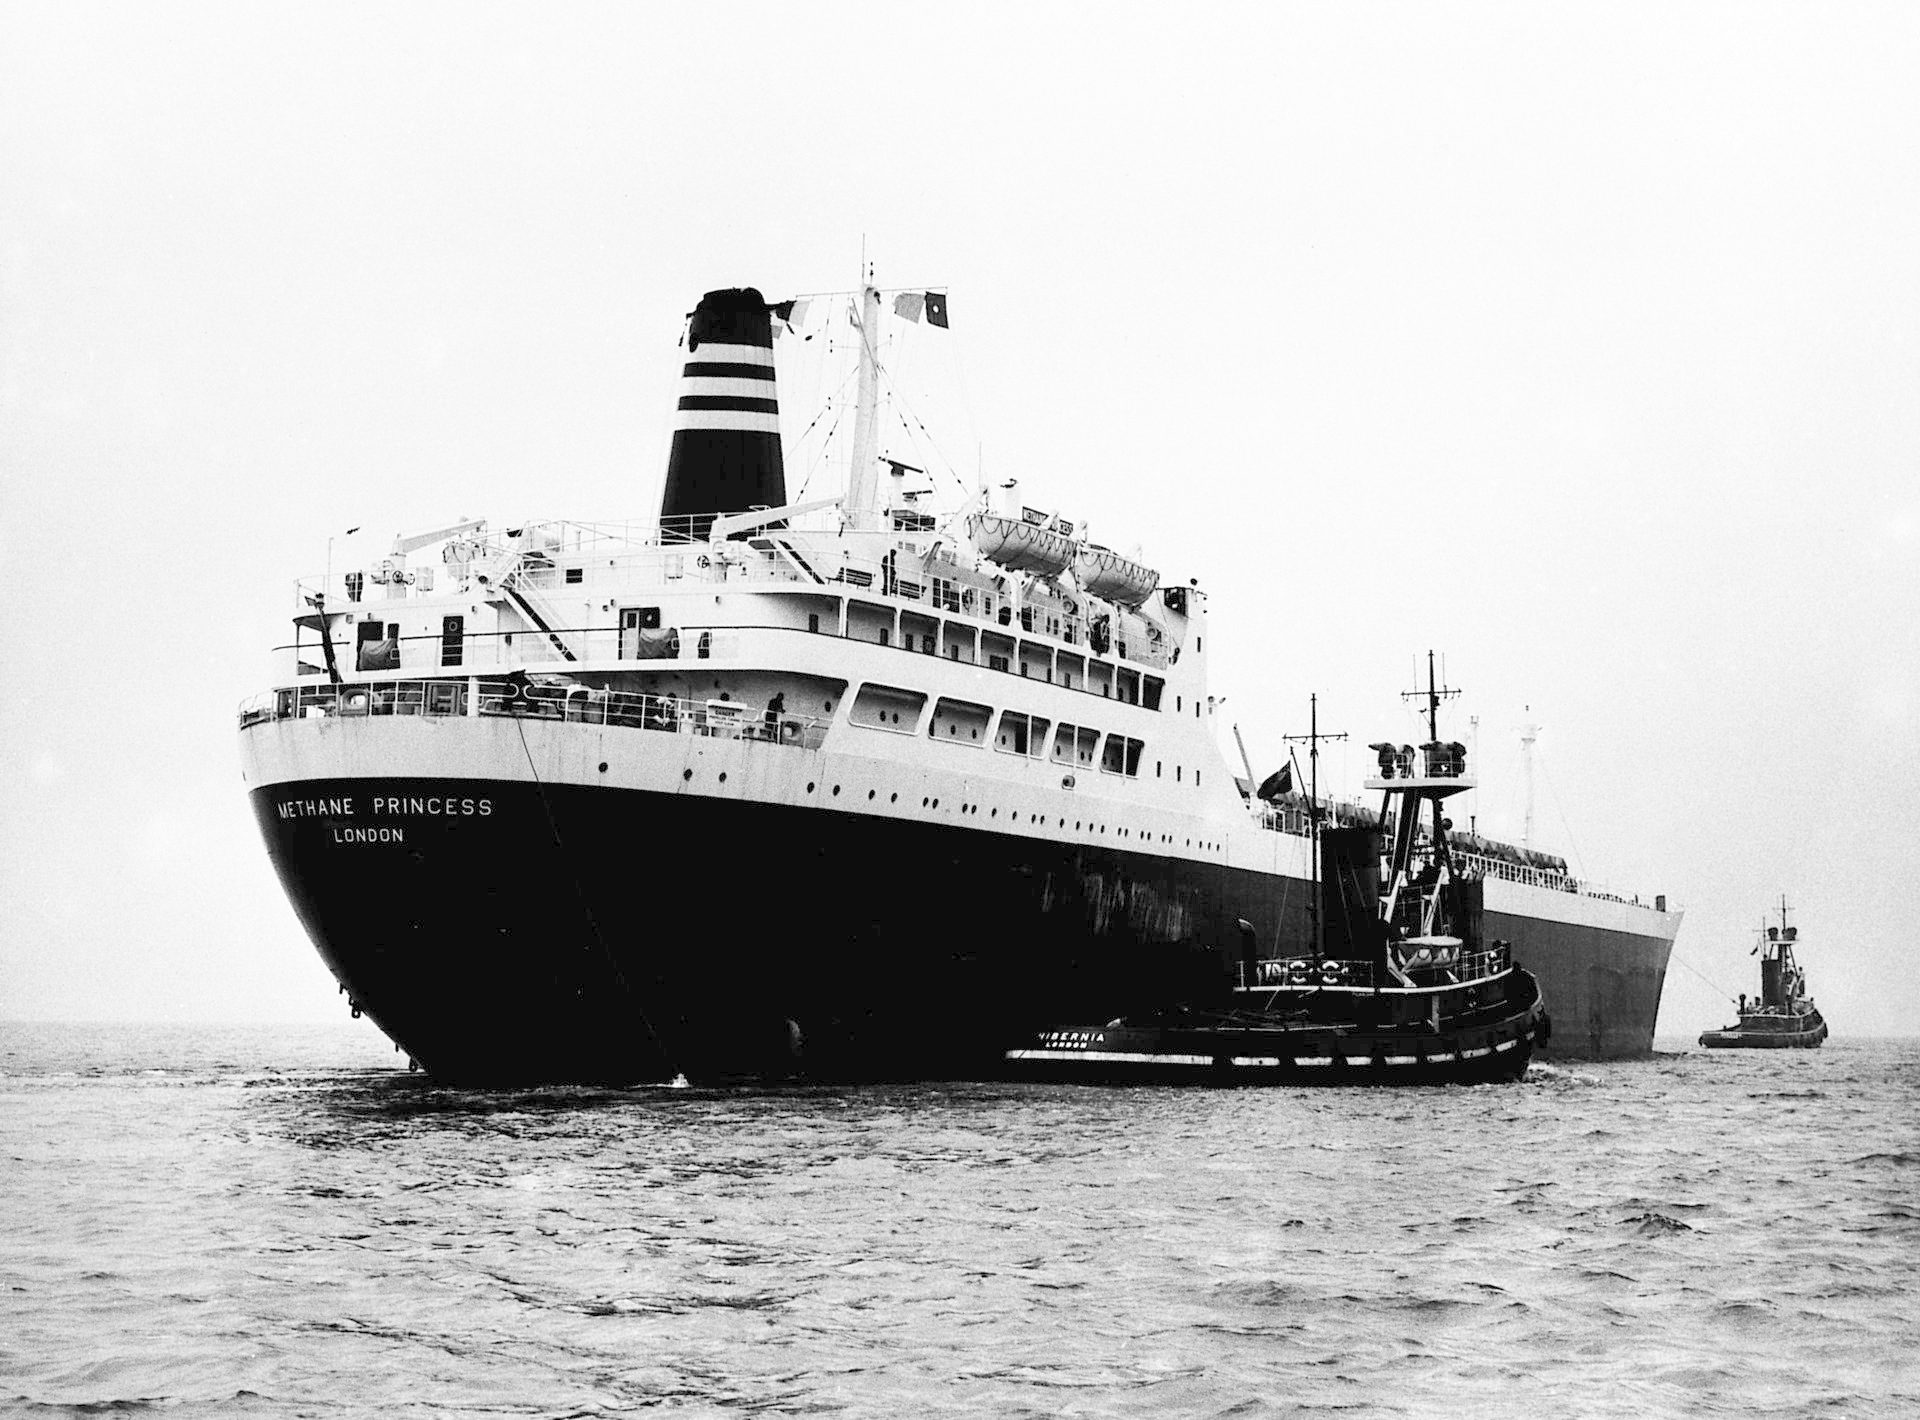 The first consignment of liquefied natural gas was shipped in 1964 from Algeria in the SS Methane Princess.